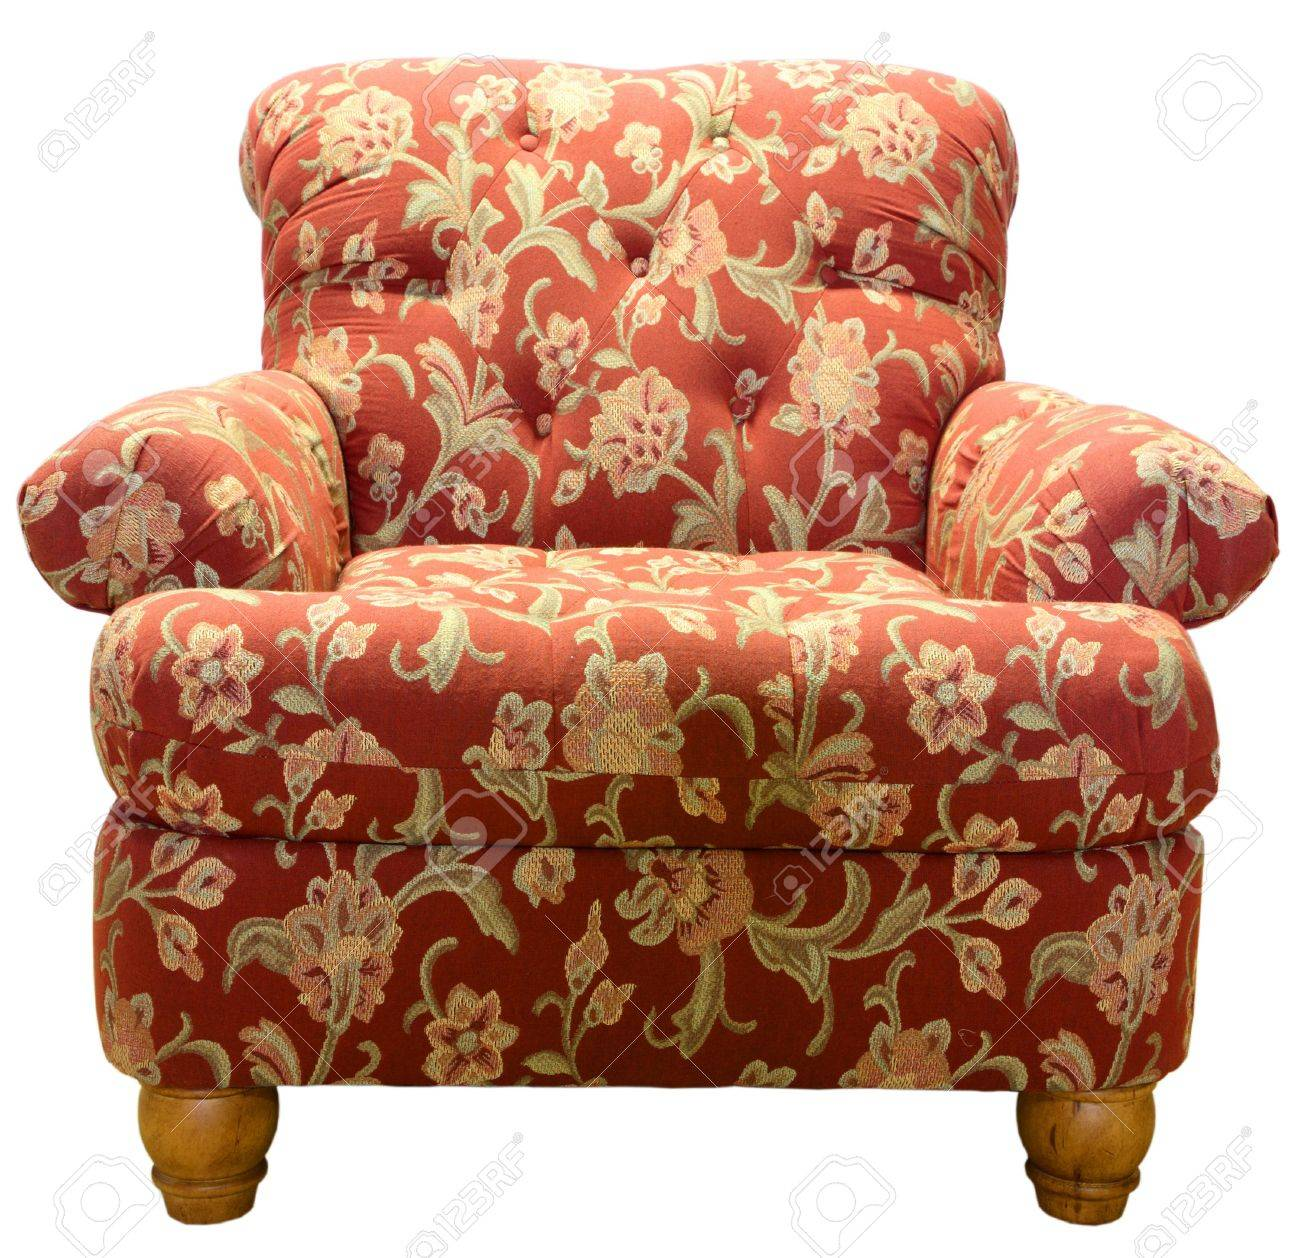 Paisley Chair Country Style Club Chair In A Red Paisley Fabric Pattern